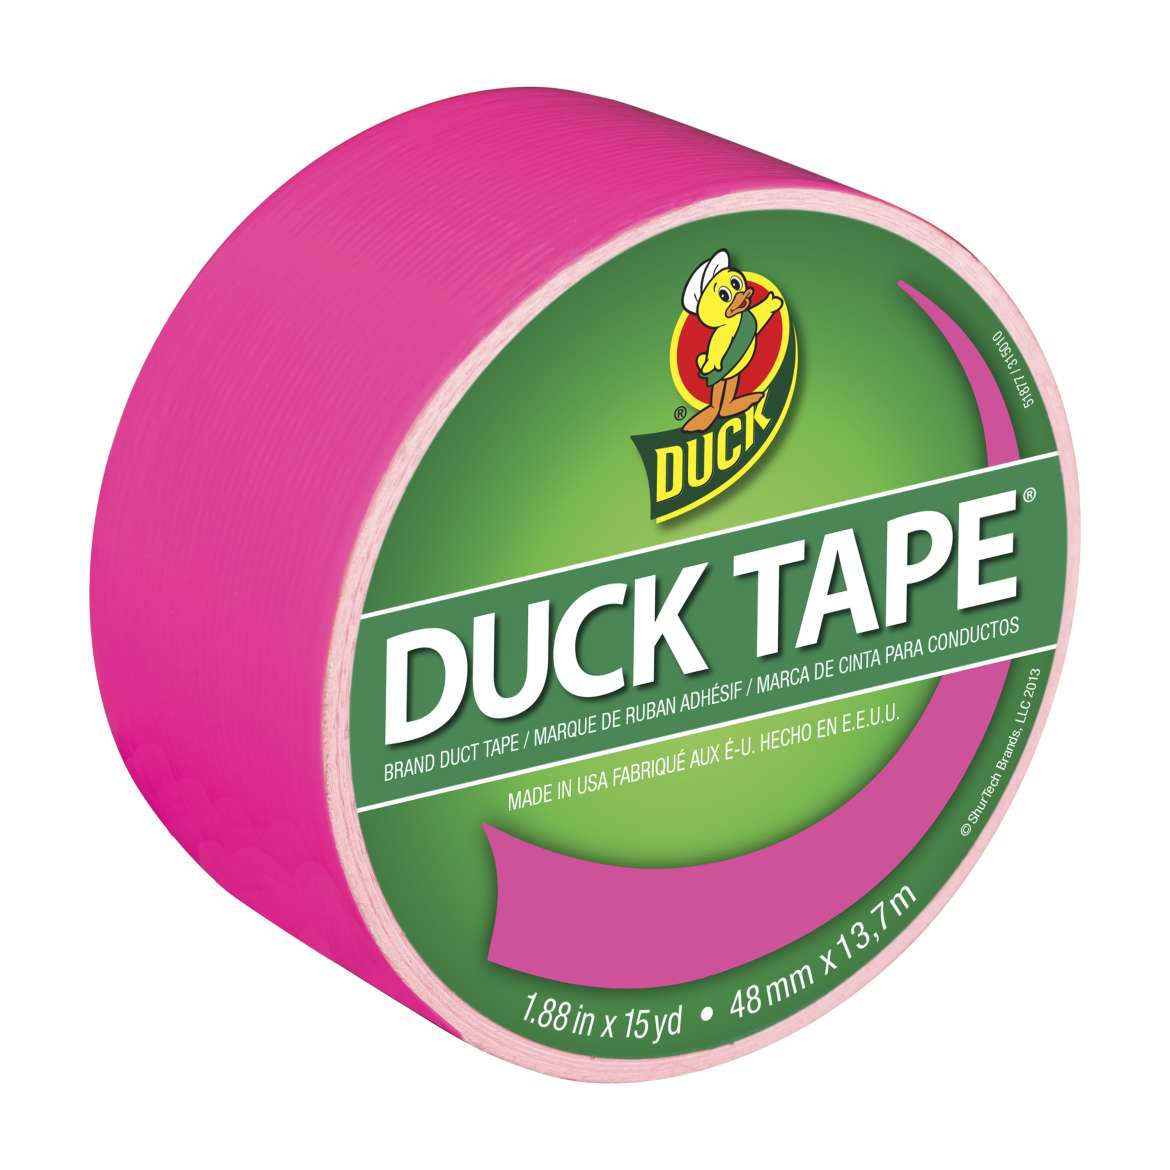 Color Duck Tape�� Brand Duct Tape - Neon Pink, 1.88 in. x 15 yd.